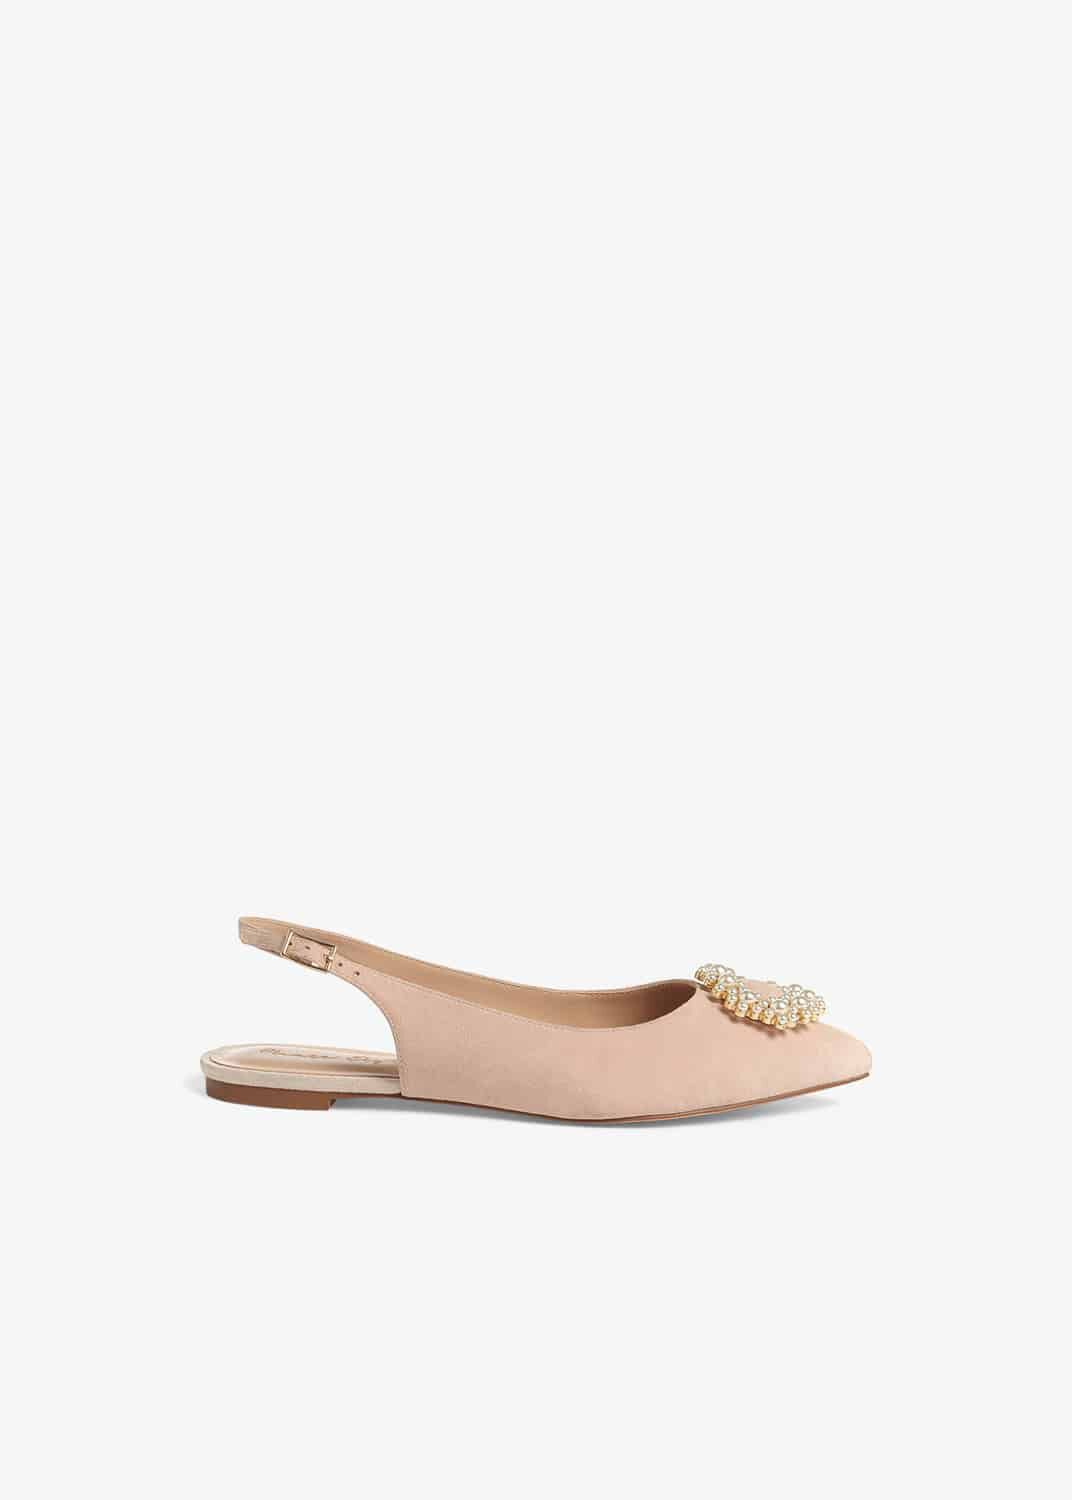 Phase Eight Abi Faux Pearl Trim Leather Slingback Flat Shoes, Pink, Flat Shoes